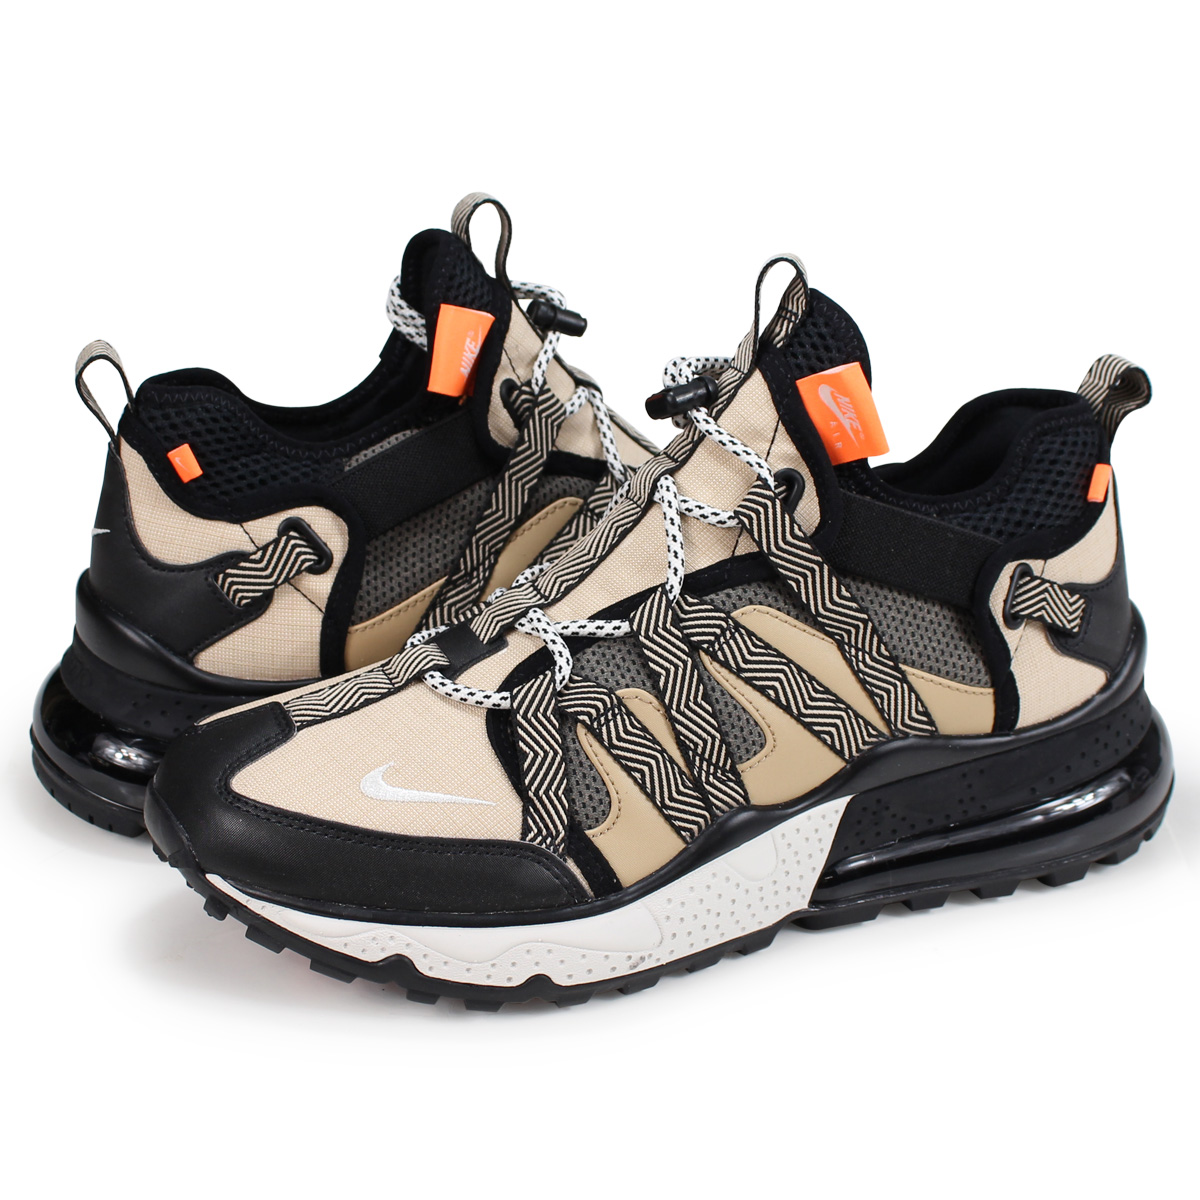 new concept 1711c b1278 NIKE AIR MAX 270 BOWFIN Kie Ney AMAX 270 sneakers men AJ7200-001 black  [load planned Shinnyu load in reservation product 10/3 containing]